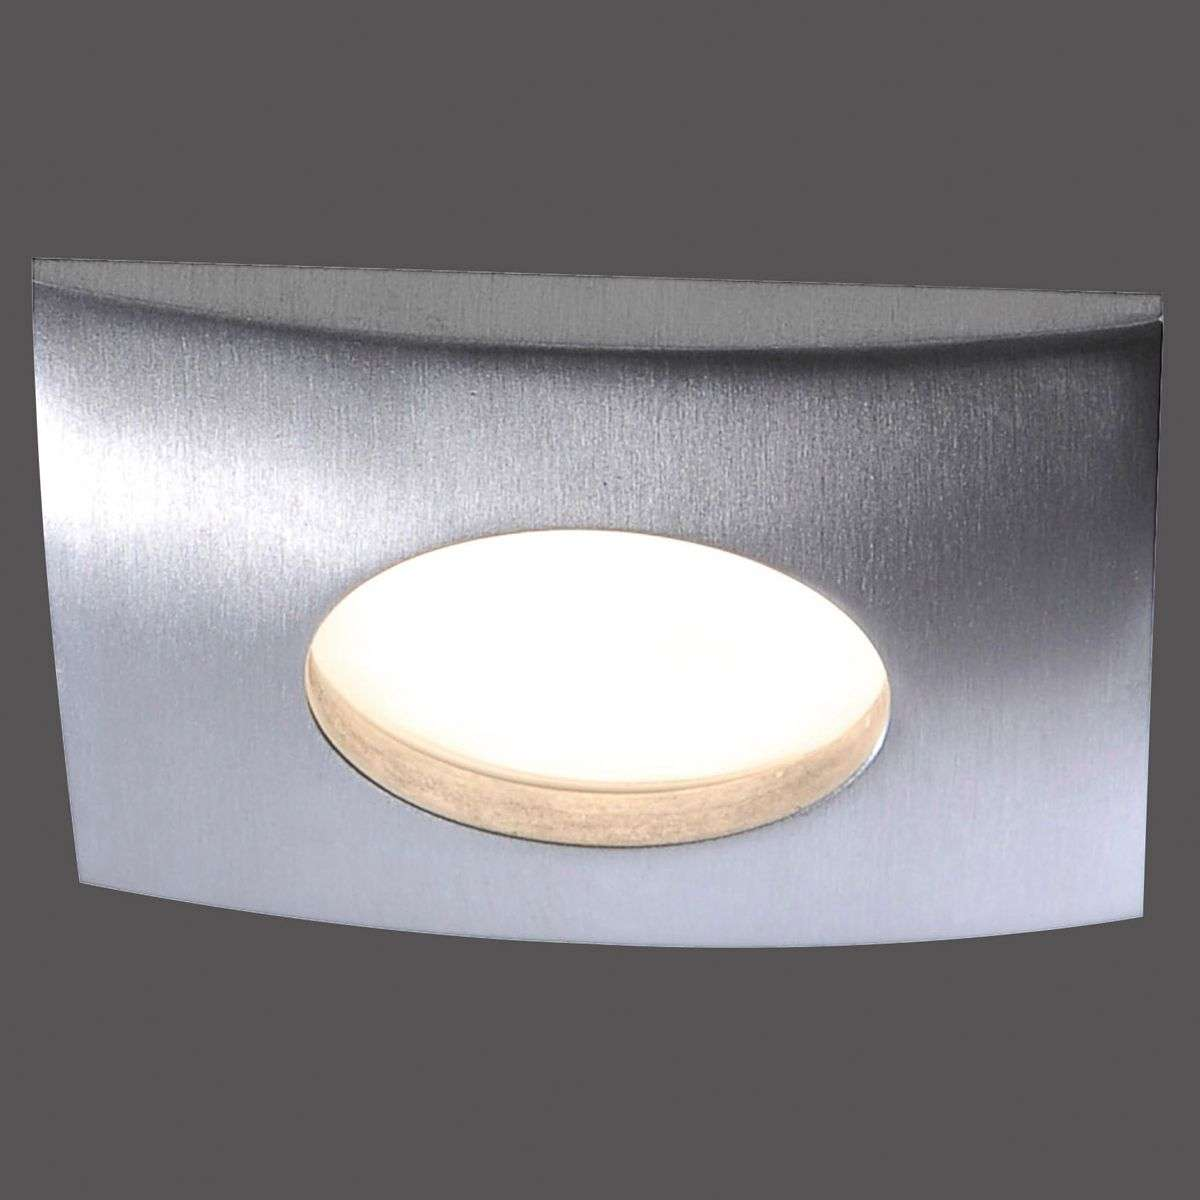 Plafonnier encastr. LED dimmable Lumeco, angulaire-7610404-31